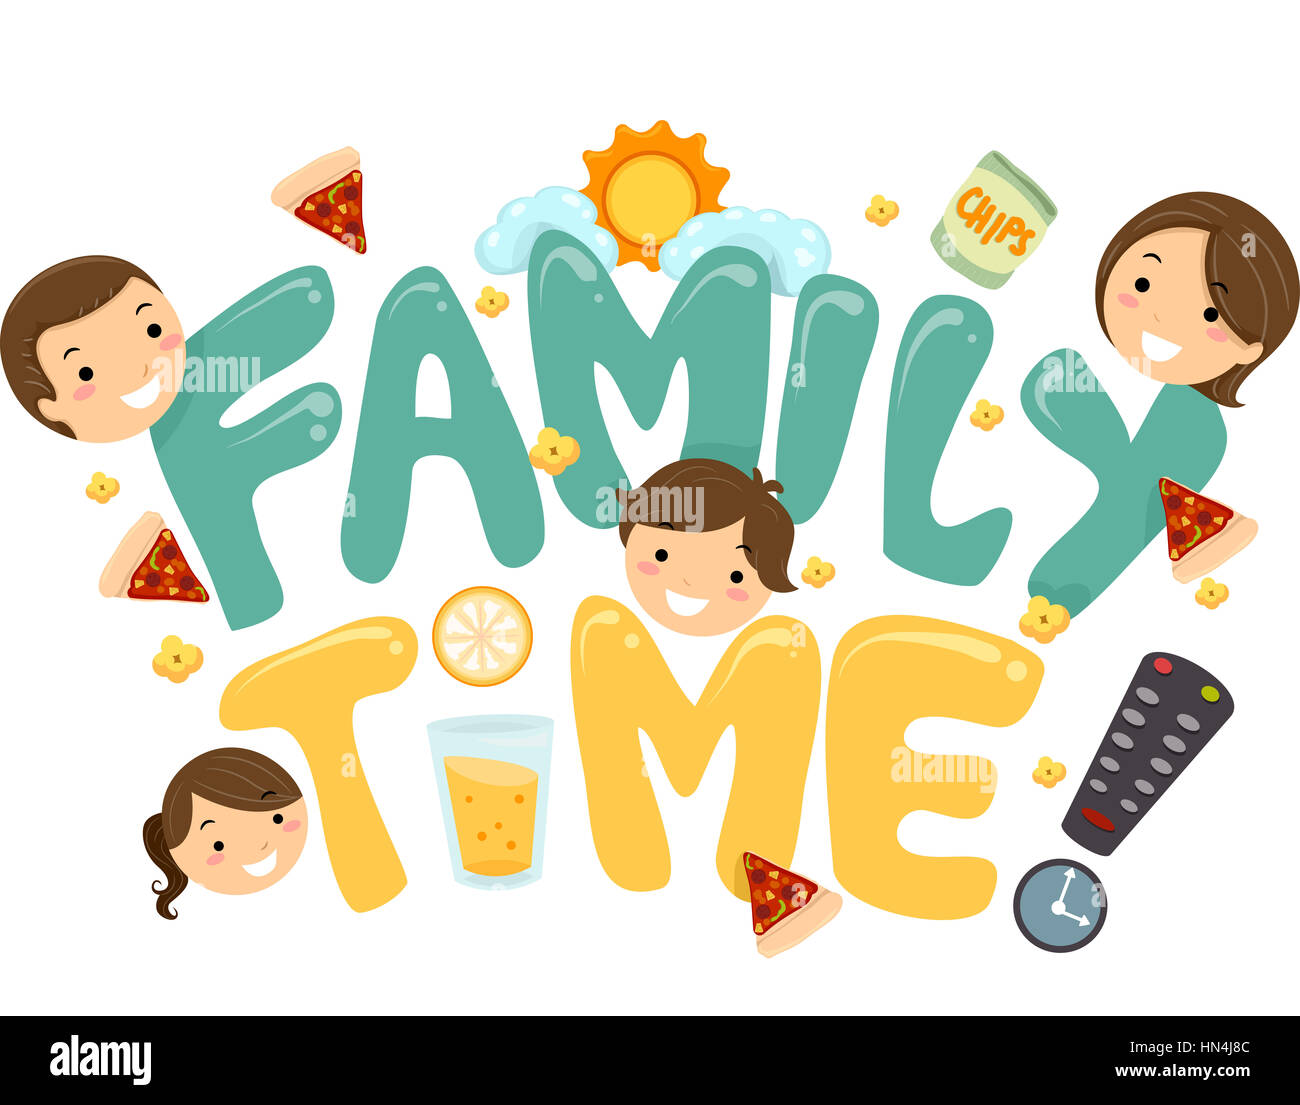 Illustration Of A Family Tv Time Lettering Stock Photo